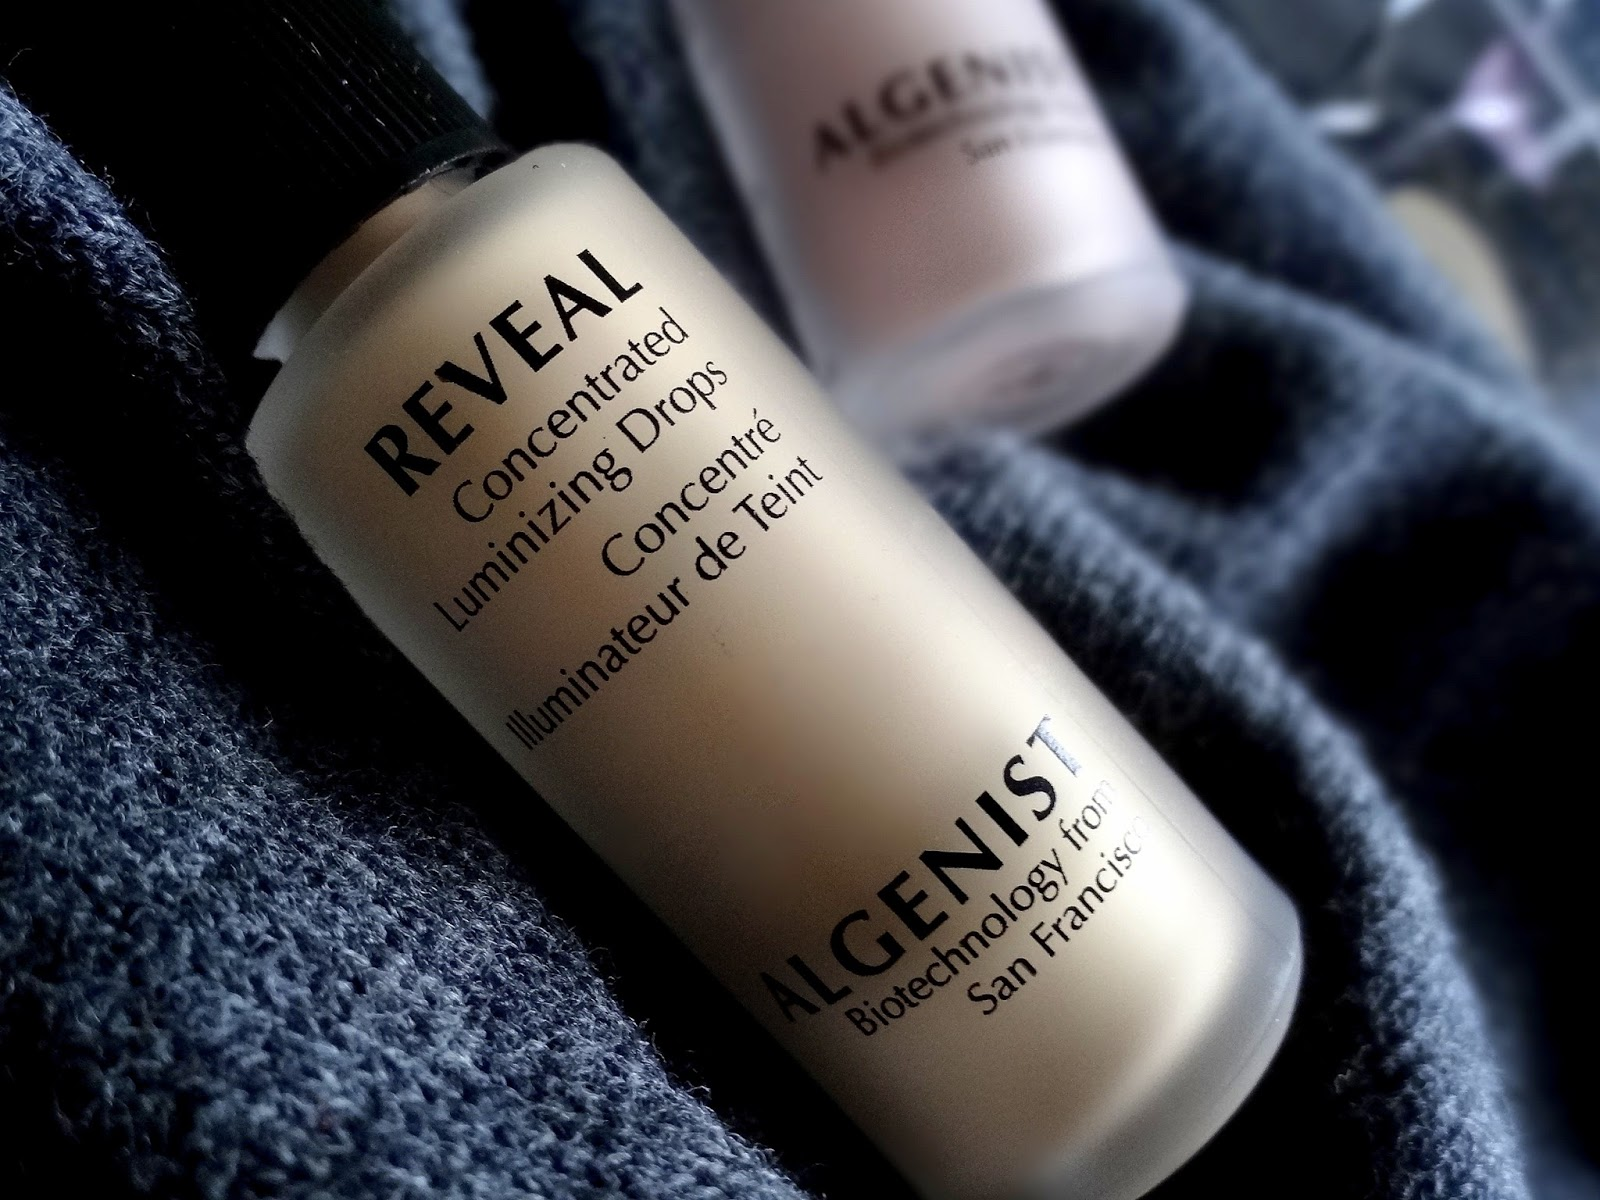 Makeup, Beauty and More: Algenist Genius 2016 Collection, Drop ...